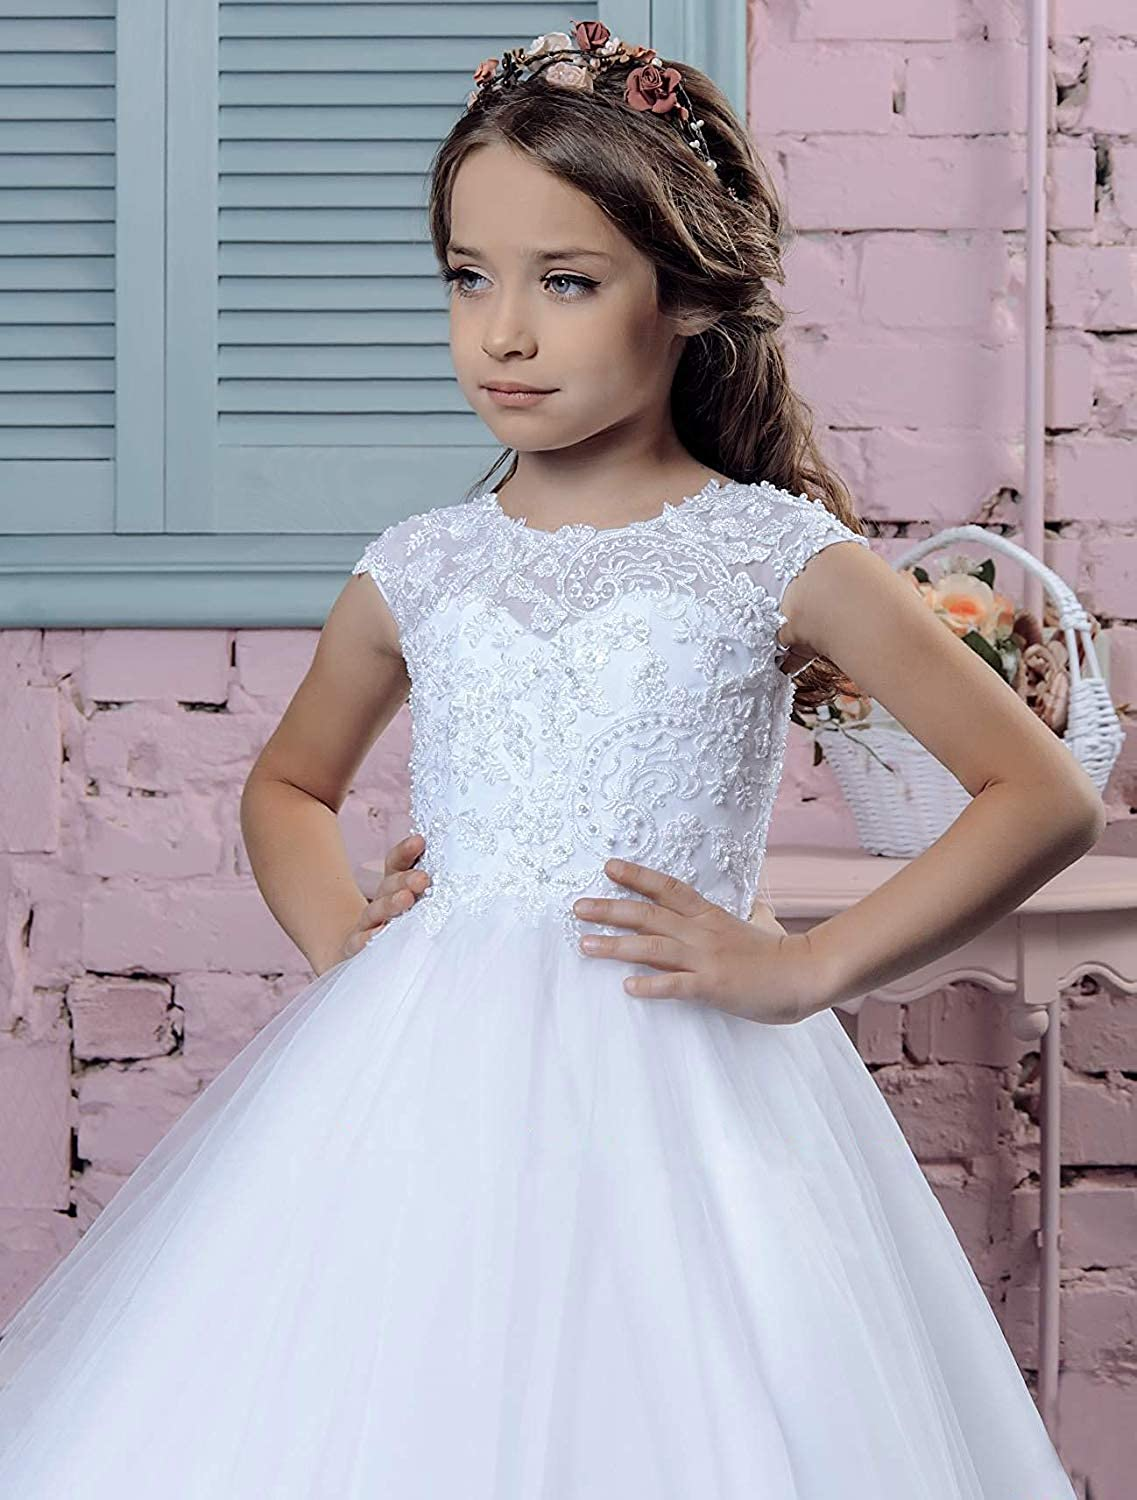 Gzcdress First Holy Communion Dress Lace Baptism Dresses for Girls 7-16 Junior Bridesmaid Wedding